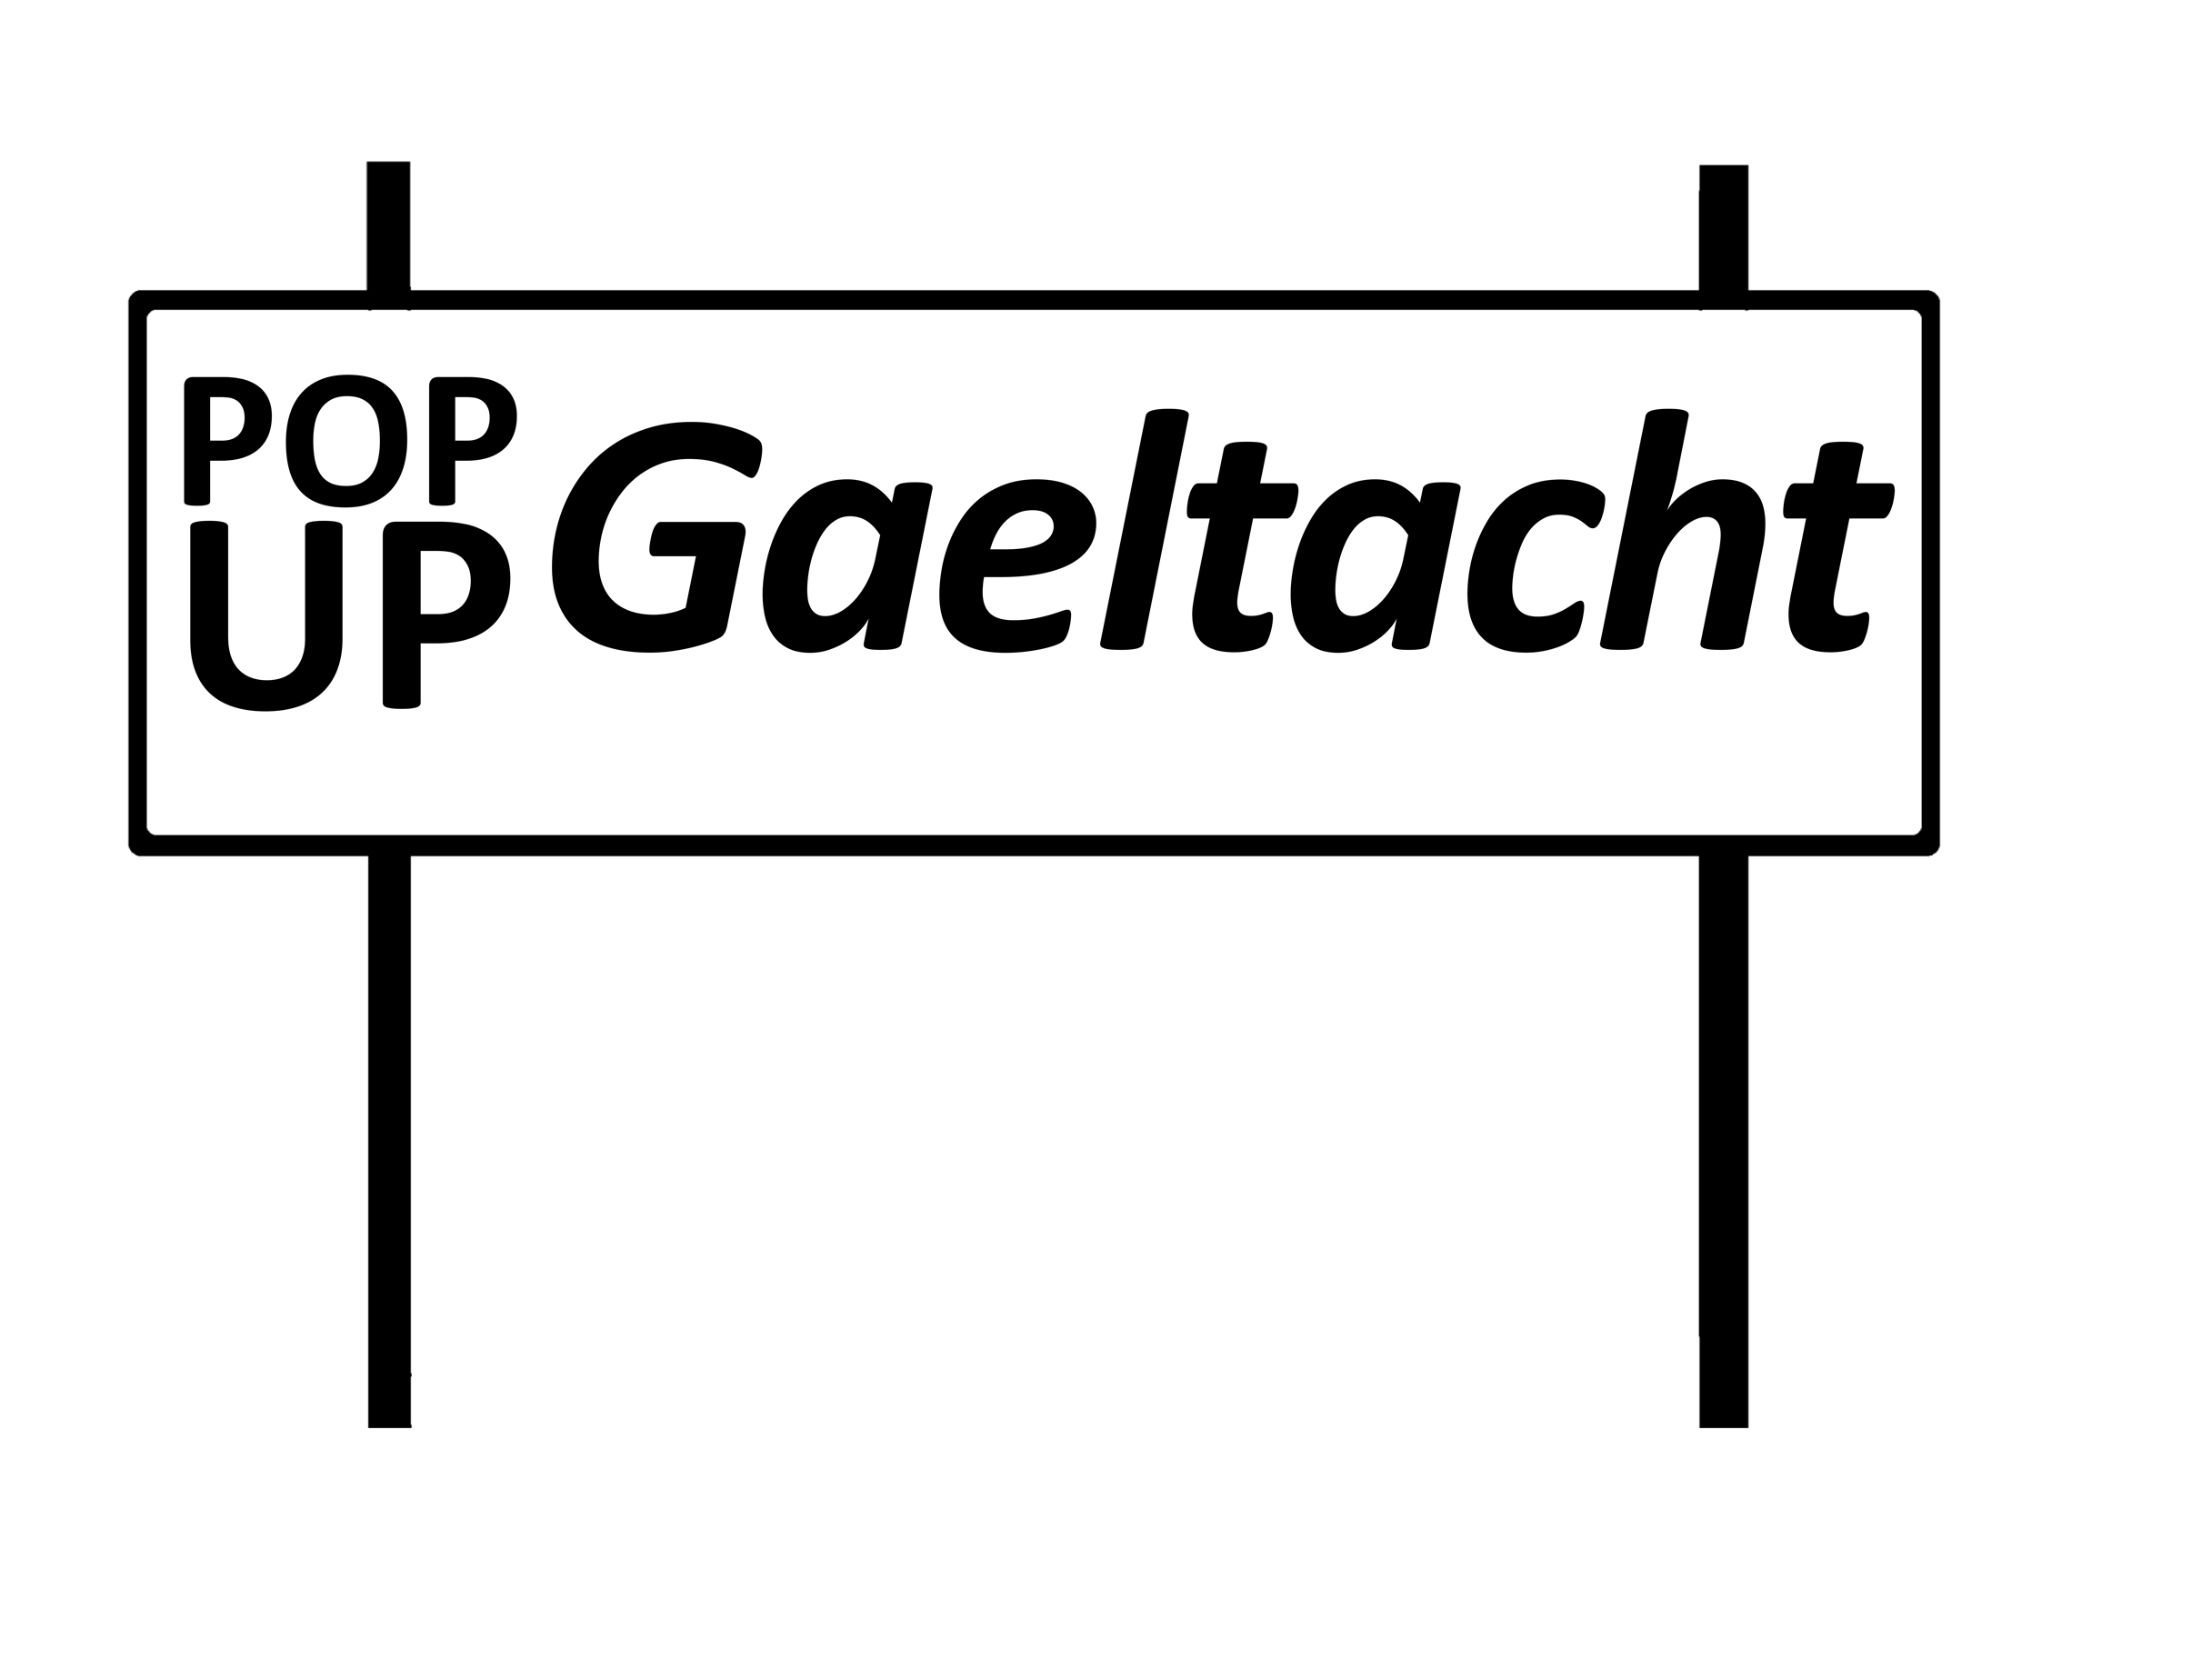 Pop Up Gaeltacht